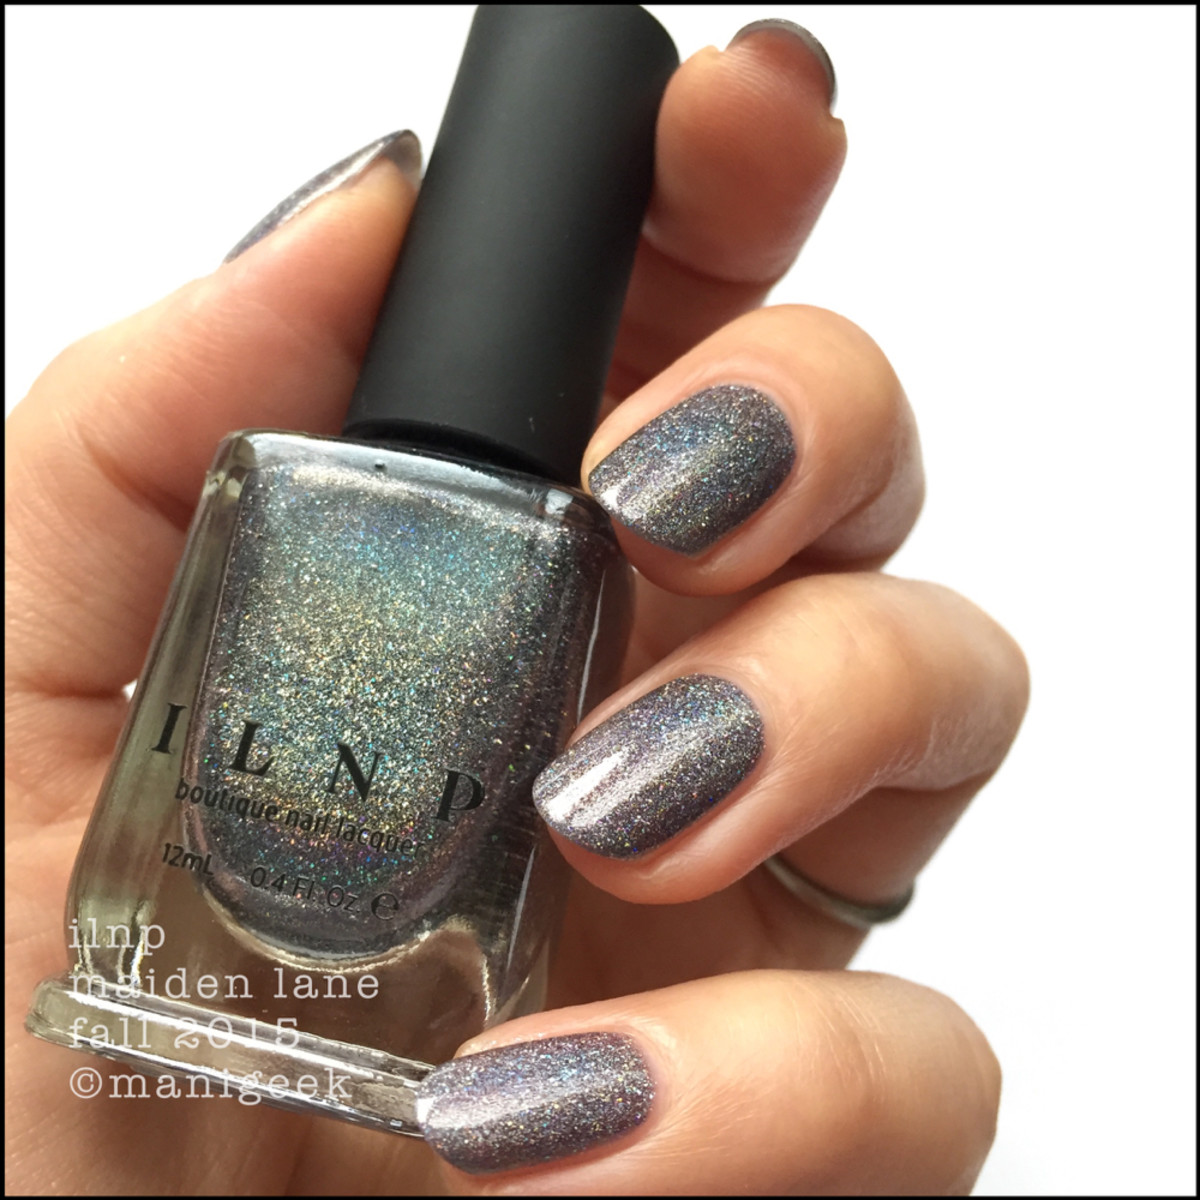 ILNP Maiden Lane - 1000 Days of Untrieds